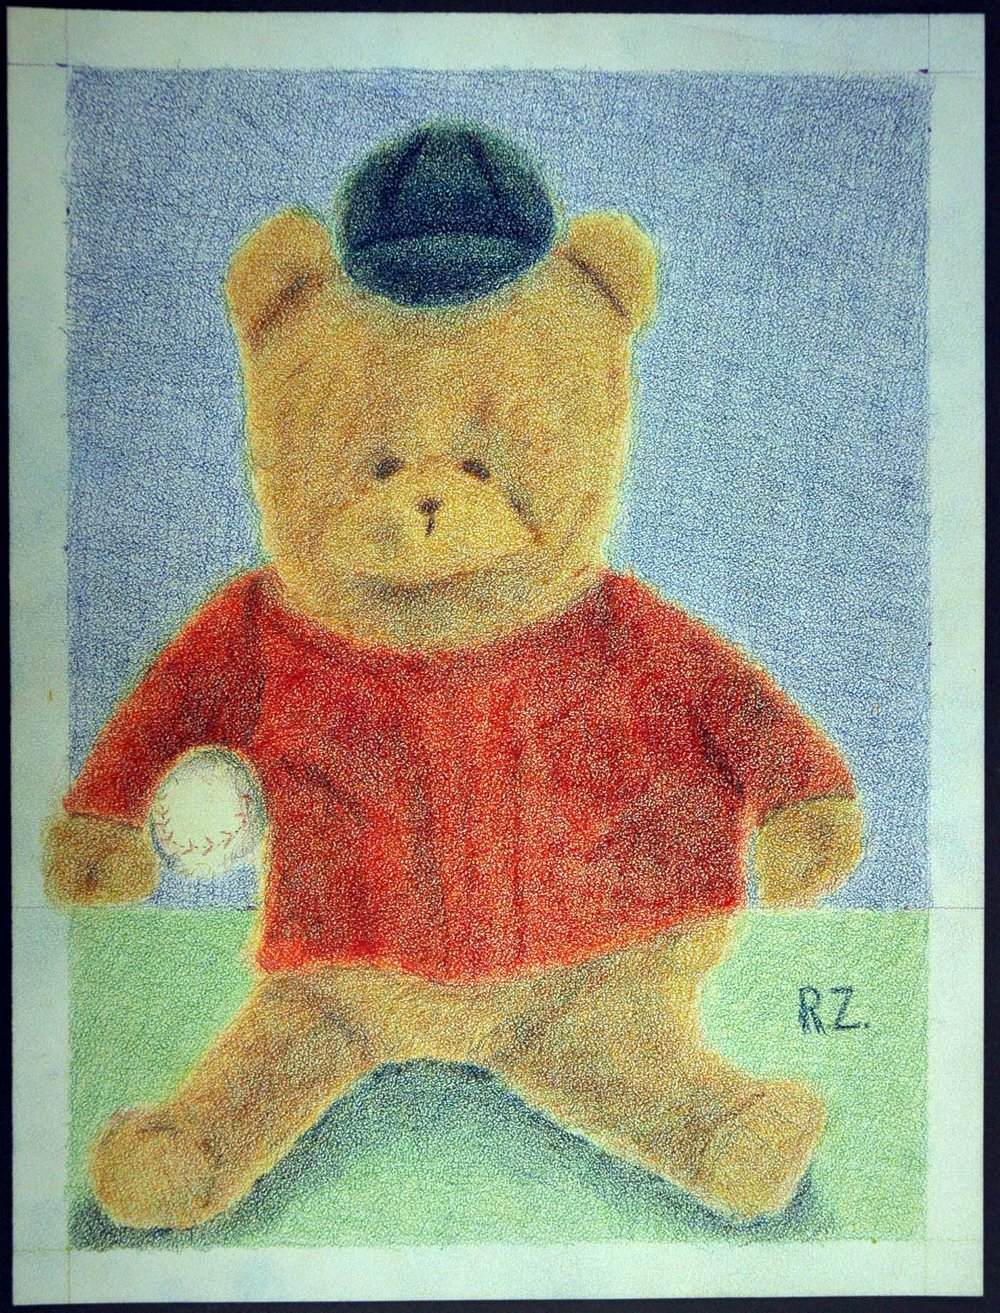 05-17 Robert Zaleski- Colored Pencil.jpg